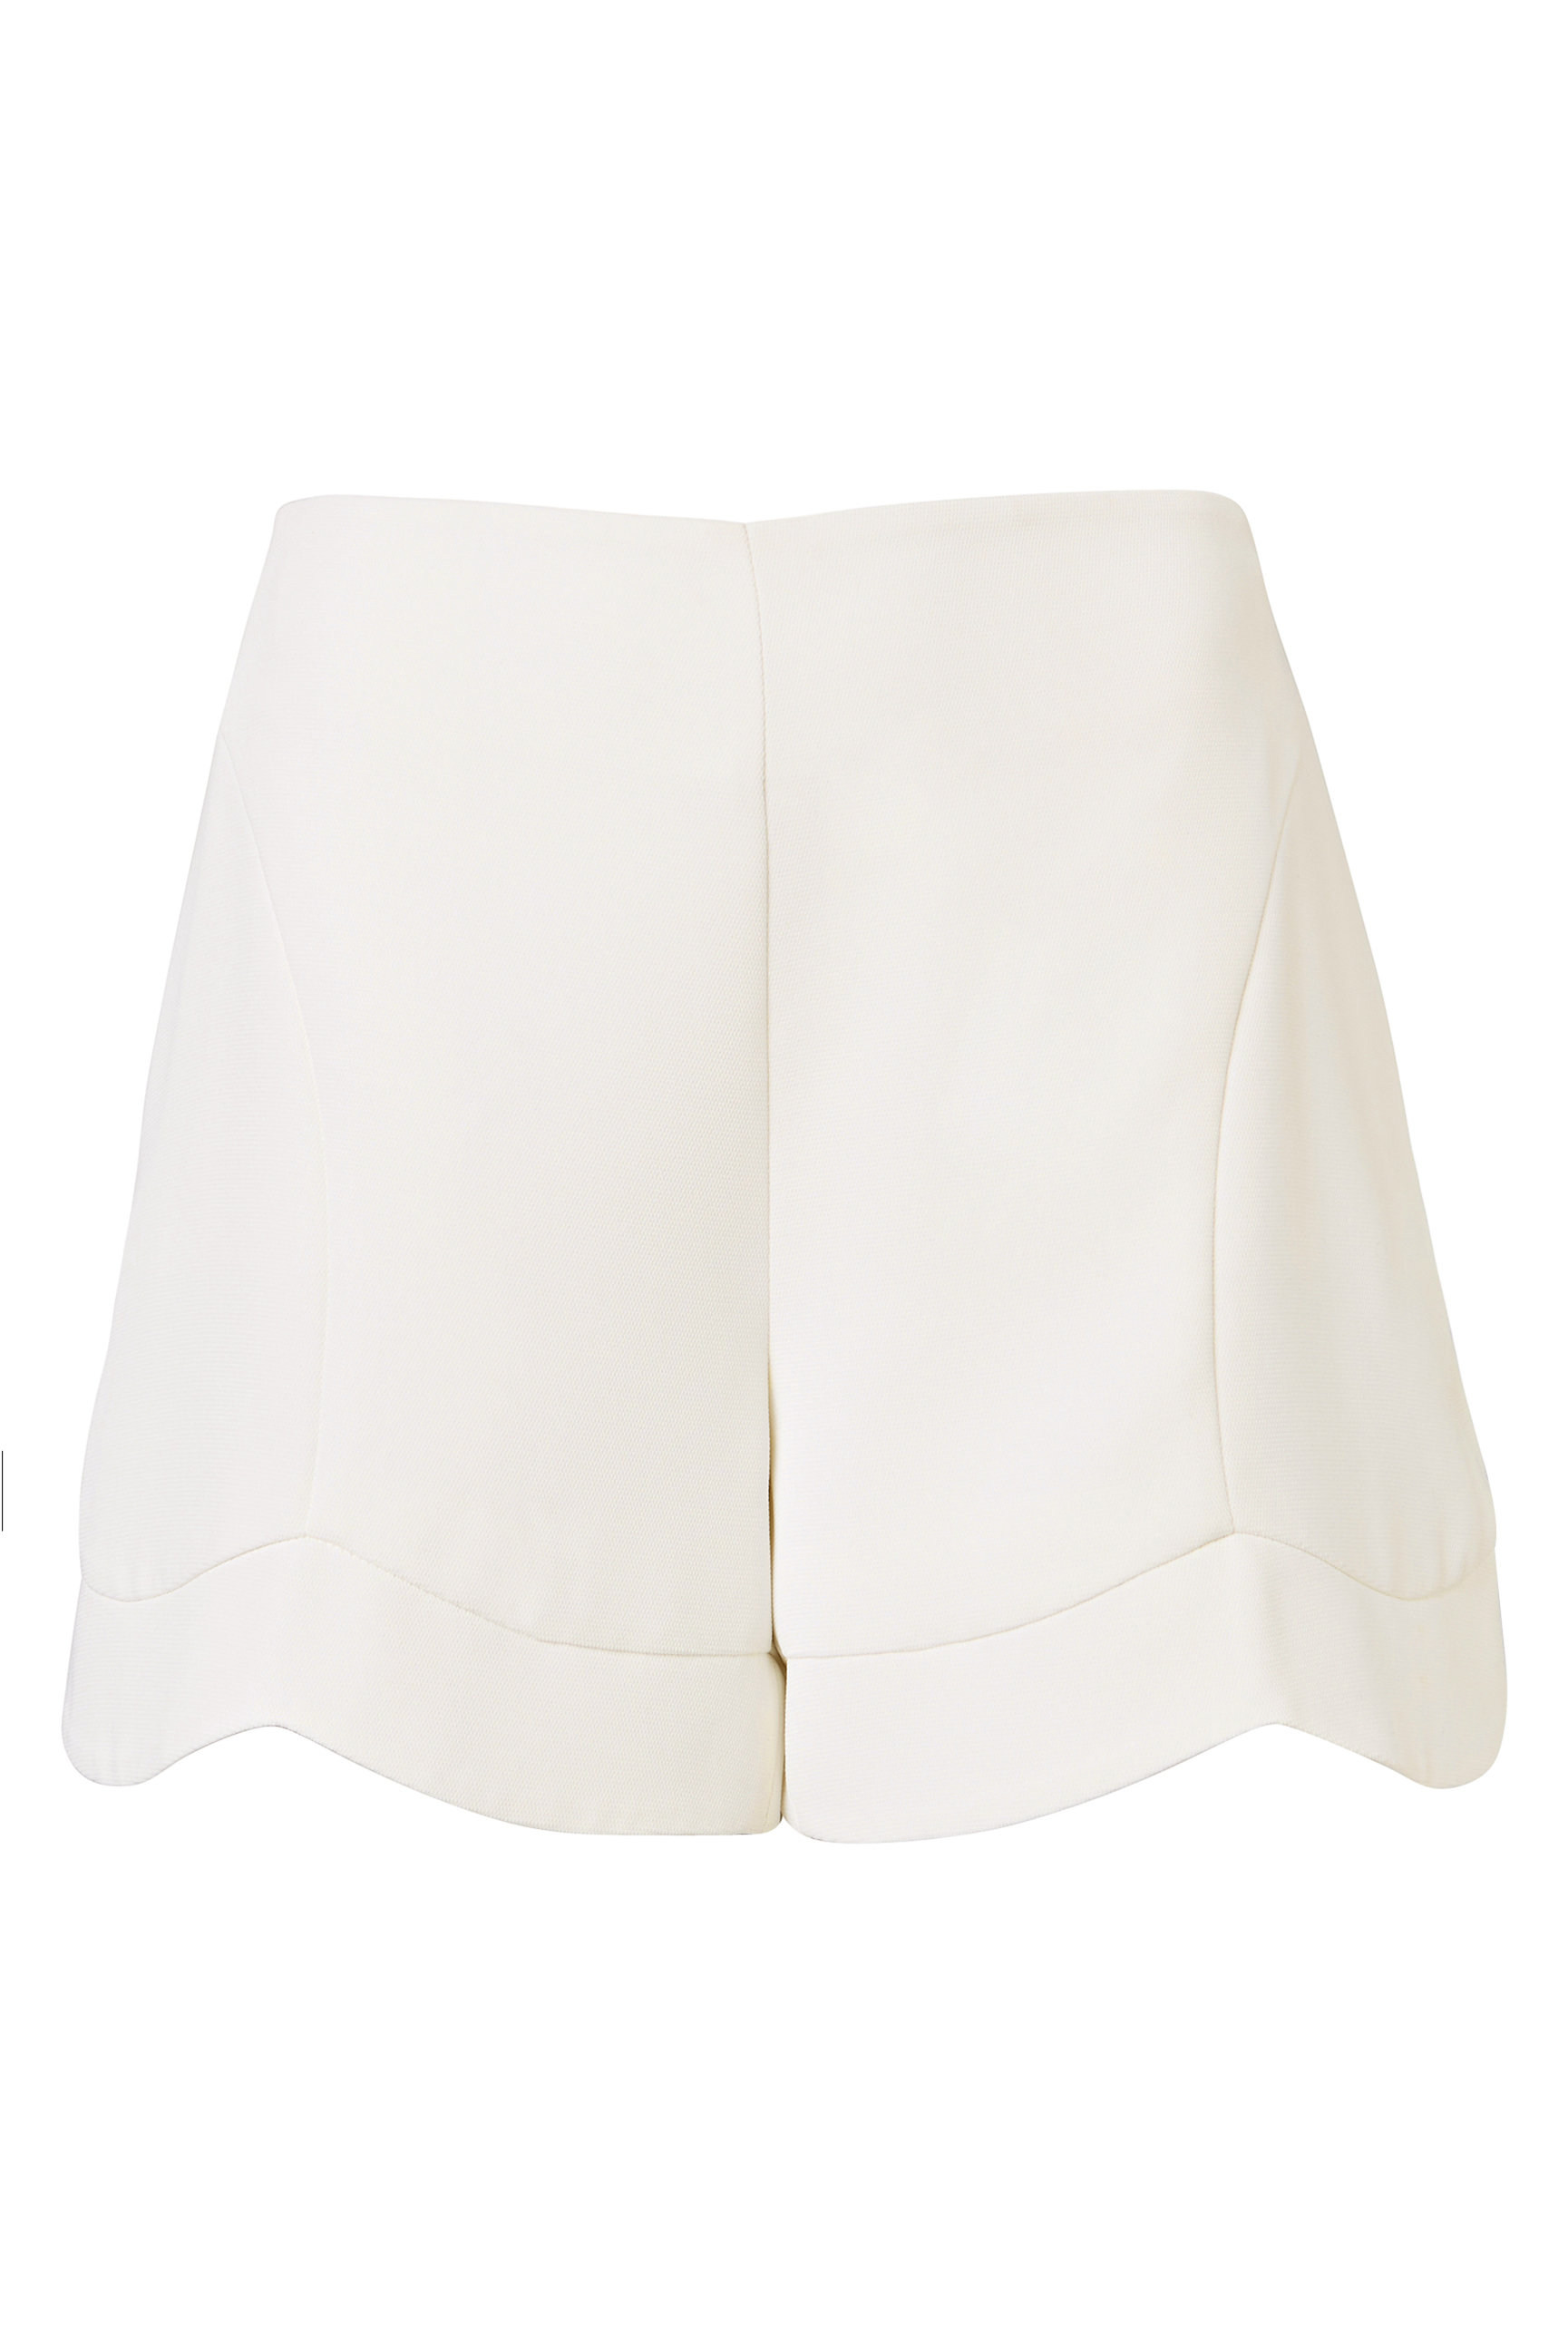 Witchey Scallop Hem Short, RRP $109.90